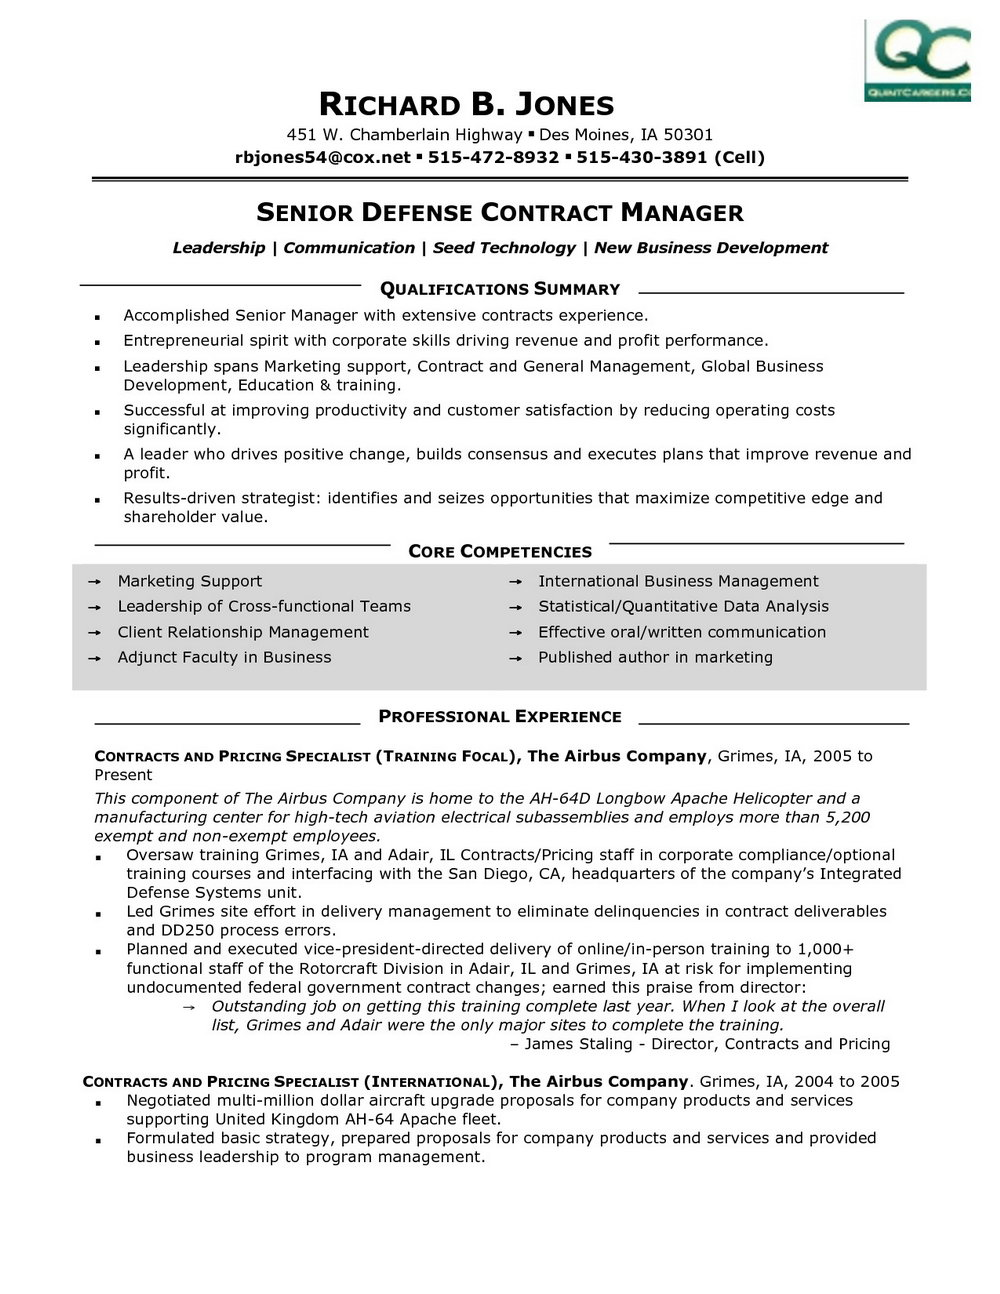 Contract Management Resume Templates